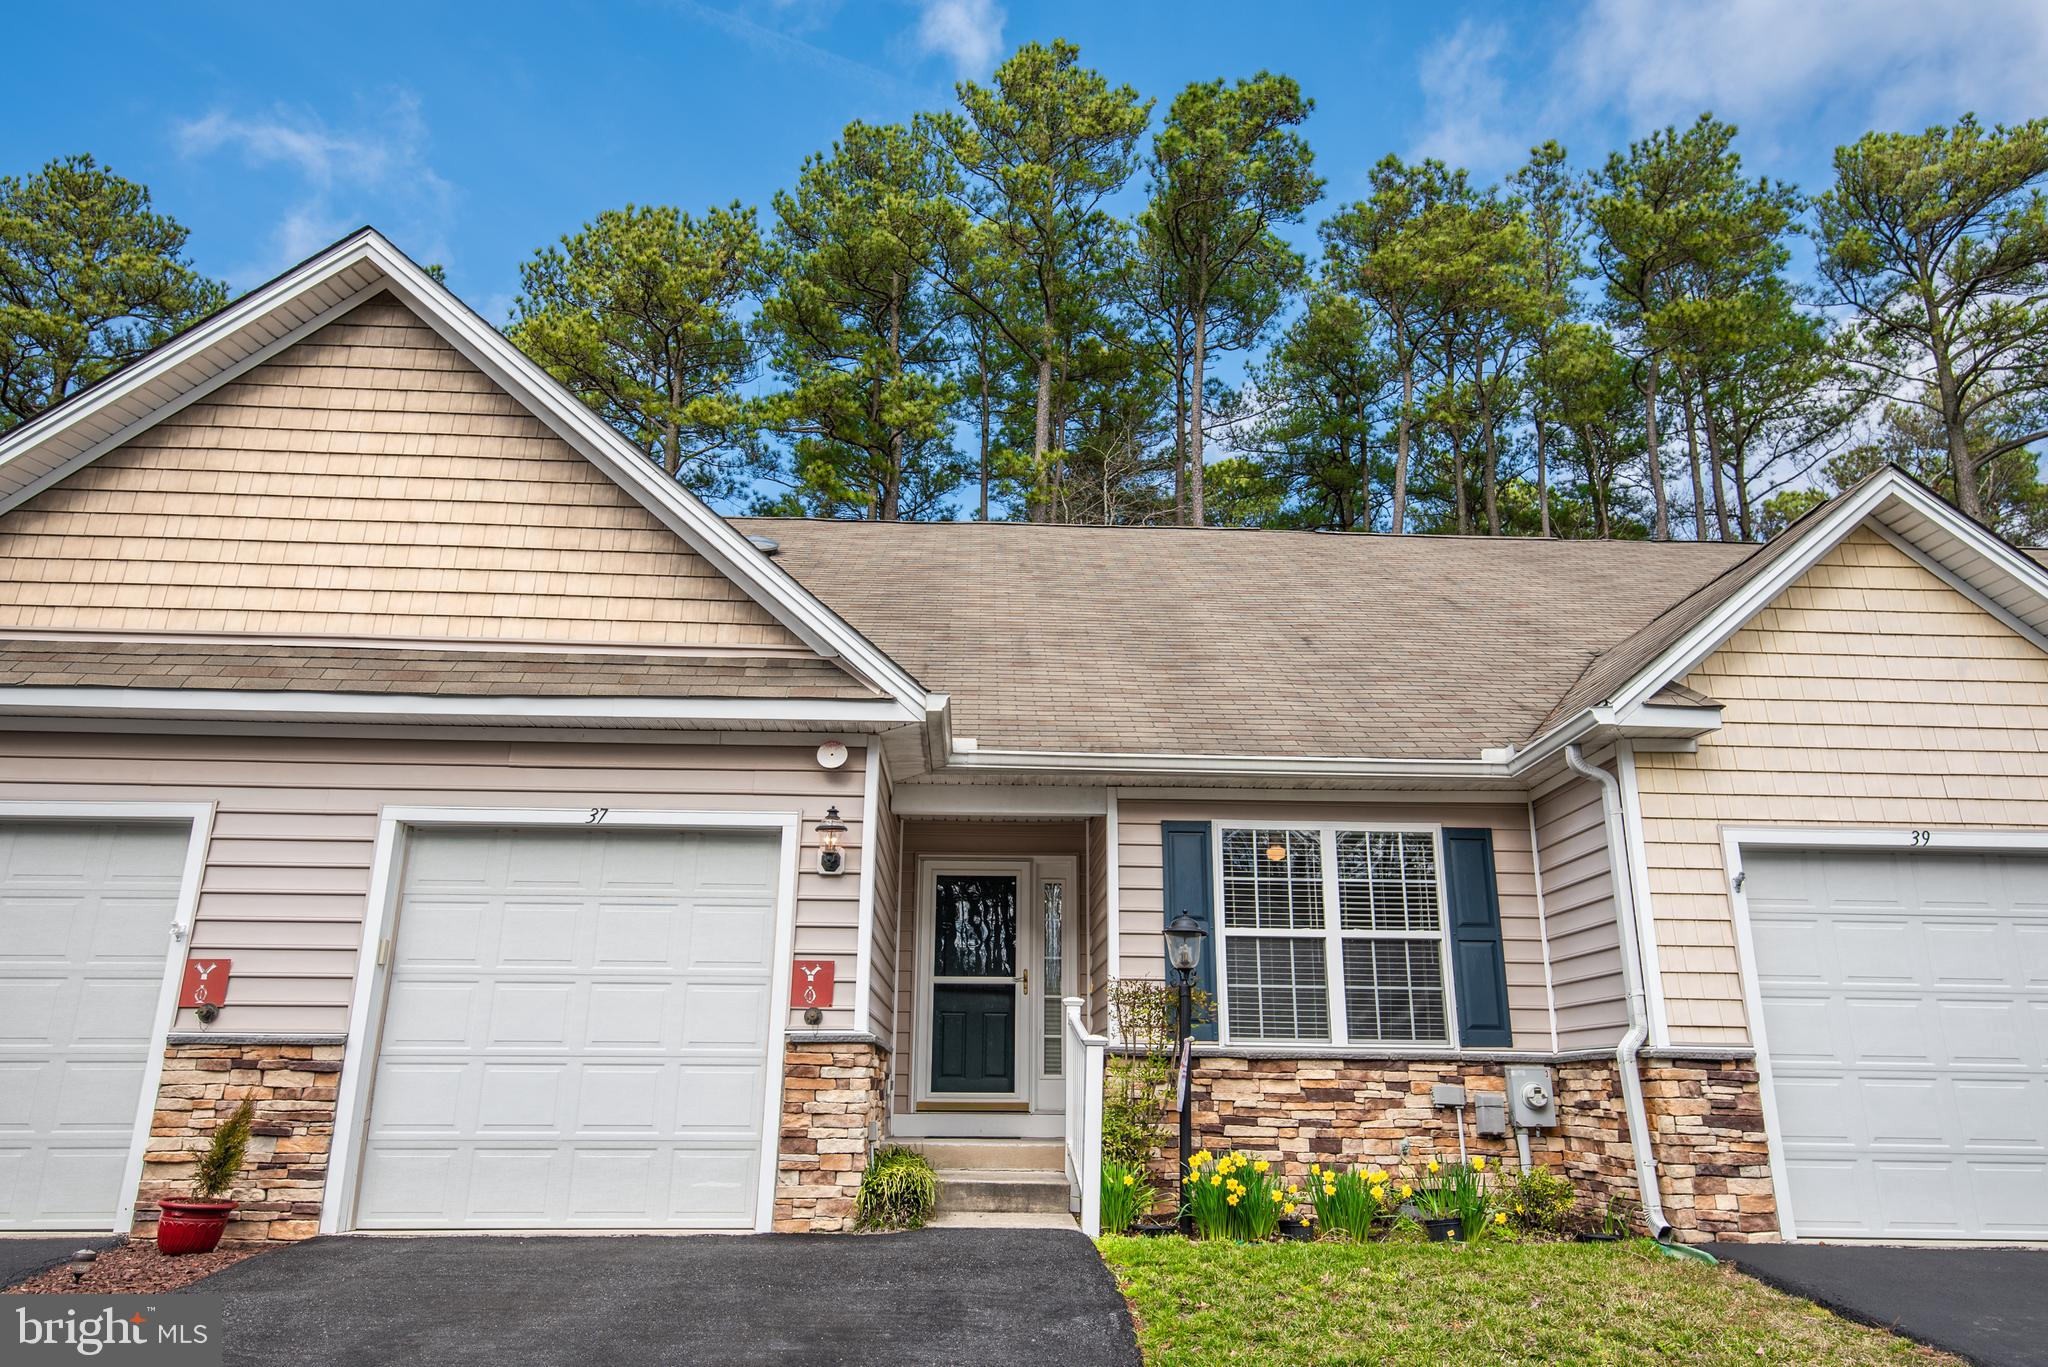 Extraordinary gem of a home in the Premier Plus 55 Community of the Parke of Ocean Pines. This lovely one level 2 bedroom, 2 bath , sunroom plus one car garage home is available for immediate enjoyment. Home showcases Newer carpet and padding 2017, Newer hot water heater July 2018, Converted to Natural Gas in 2018, Stainless Steel Refrigerator, Washer, Dryer replaced in 2015. Exceptional features to the home include upgraded cabinetry with pull outs, Sky Tunnel in Kitchen; Designer ceiling fans with light fixtures faux wooden blinds though out, custom valances, laundry room shelving and home was recently freshly painted! Entertain friends and family on the expansive brick patio backing to forest retention area leaving plenty of room for a barbeque or a crab feast. No worries for storage with large one car garage complete with shelving! So why wait to enjoy the beach lifestyle now is the time to buy. Call for your private showing today!